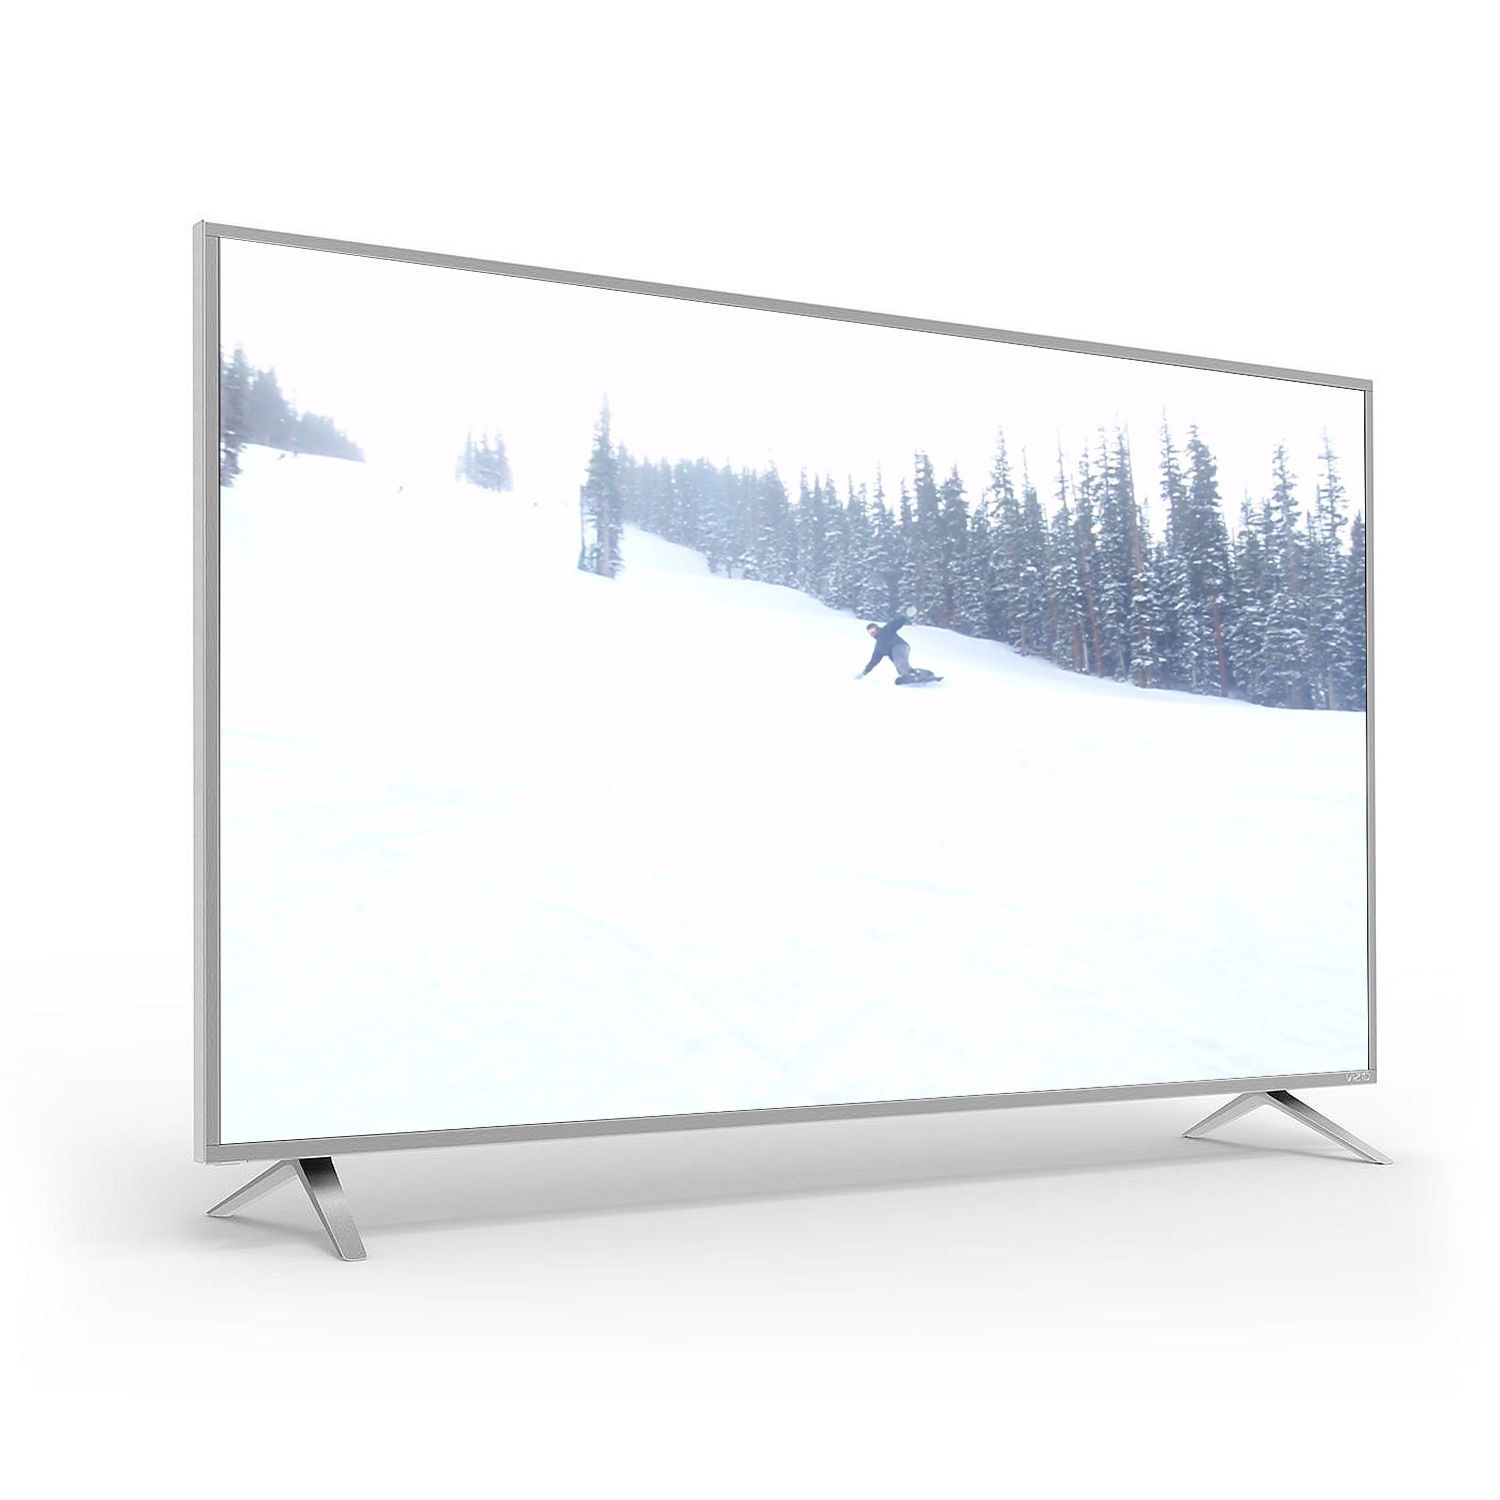 Vizio Refurbished 75inch SmartCast 4K HDR Smart LED Home